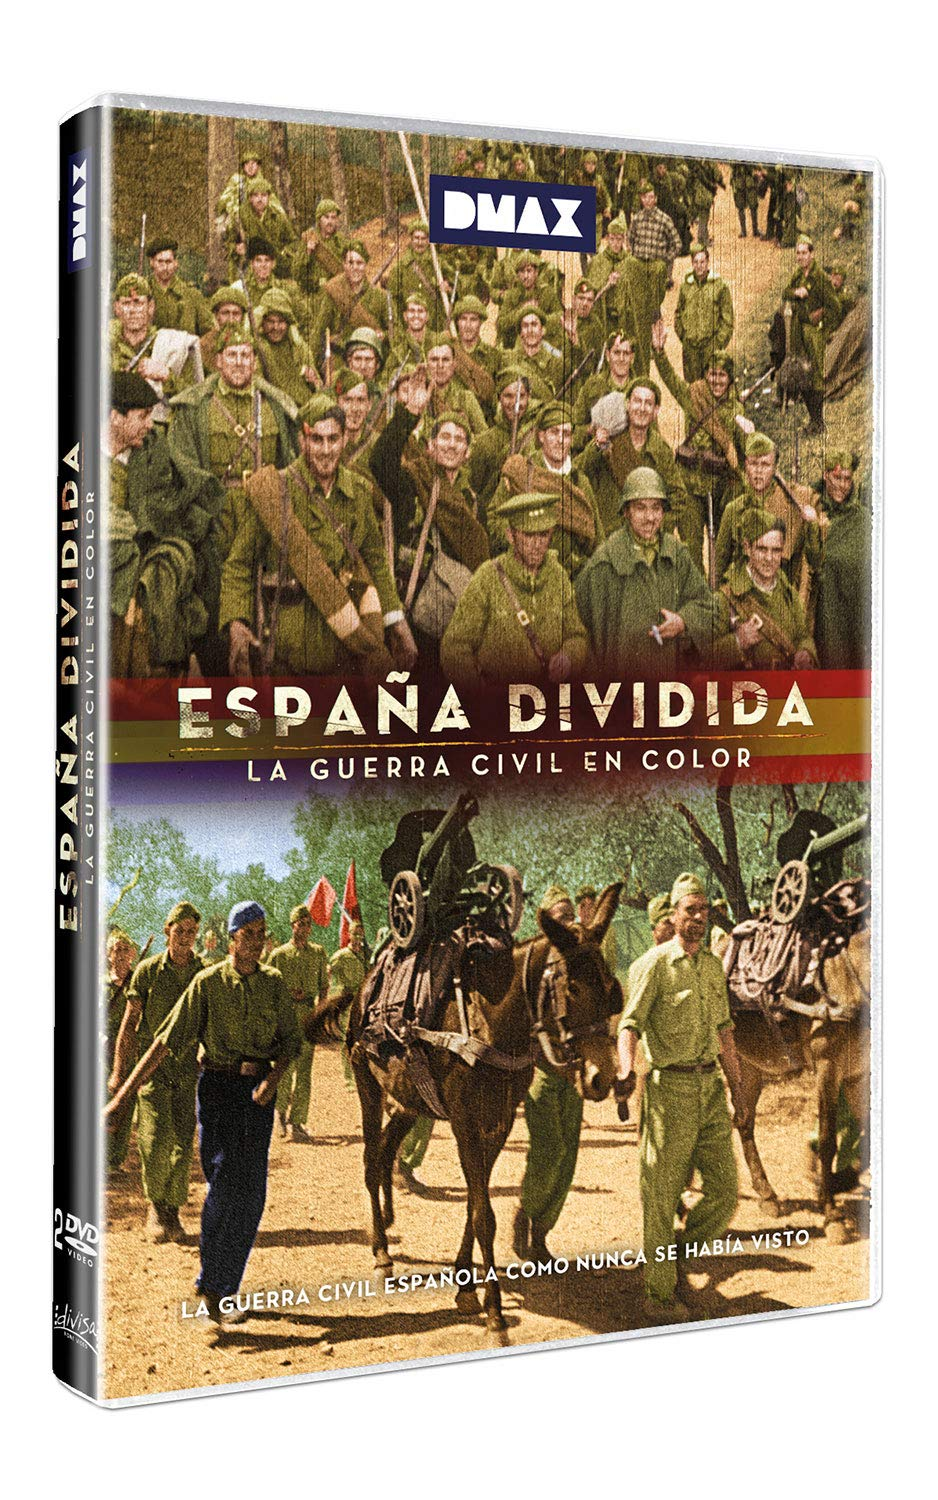 España Dividida - La Guerra Civil en color + La mirada de los historiadores DVD: Amazon.es: Documental, Francesc Escribano, Lluís, Documental: Cine y Series TV